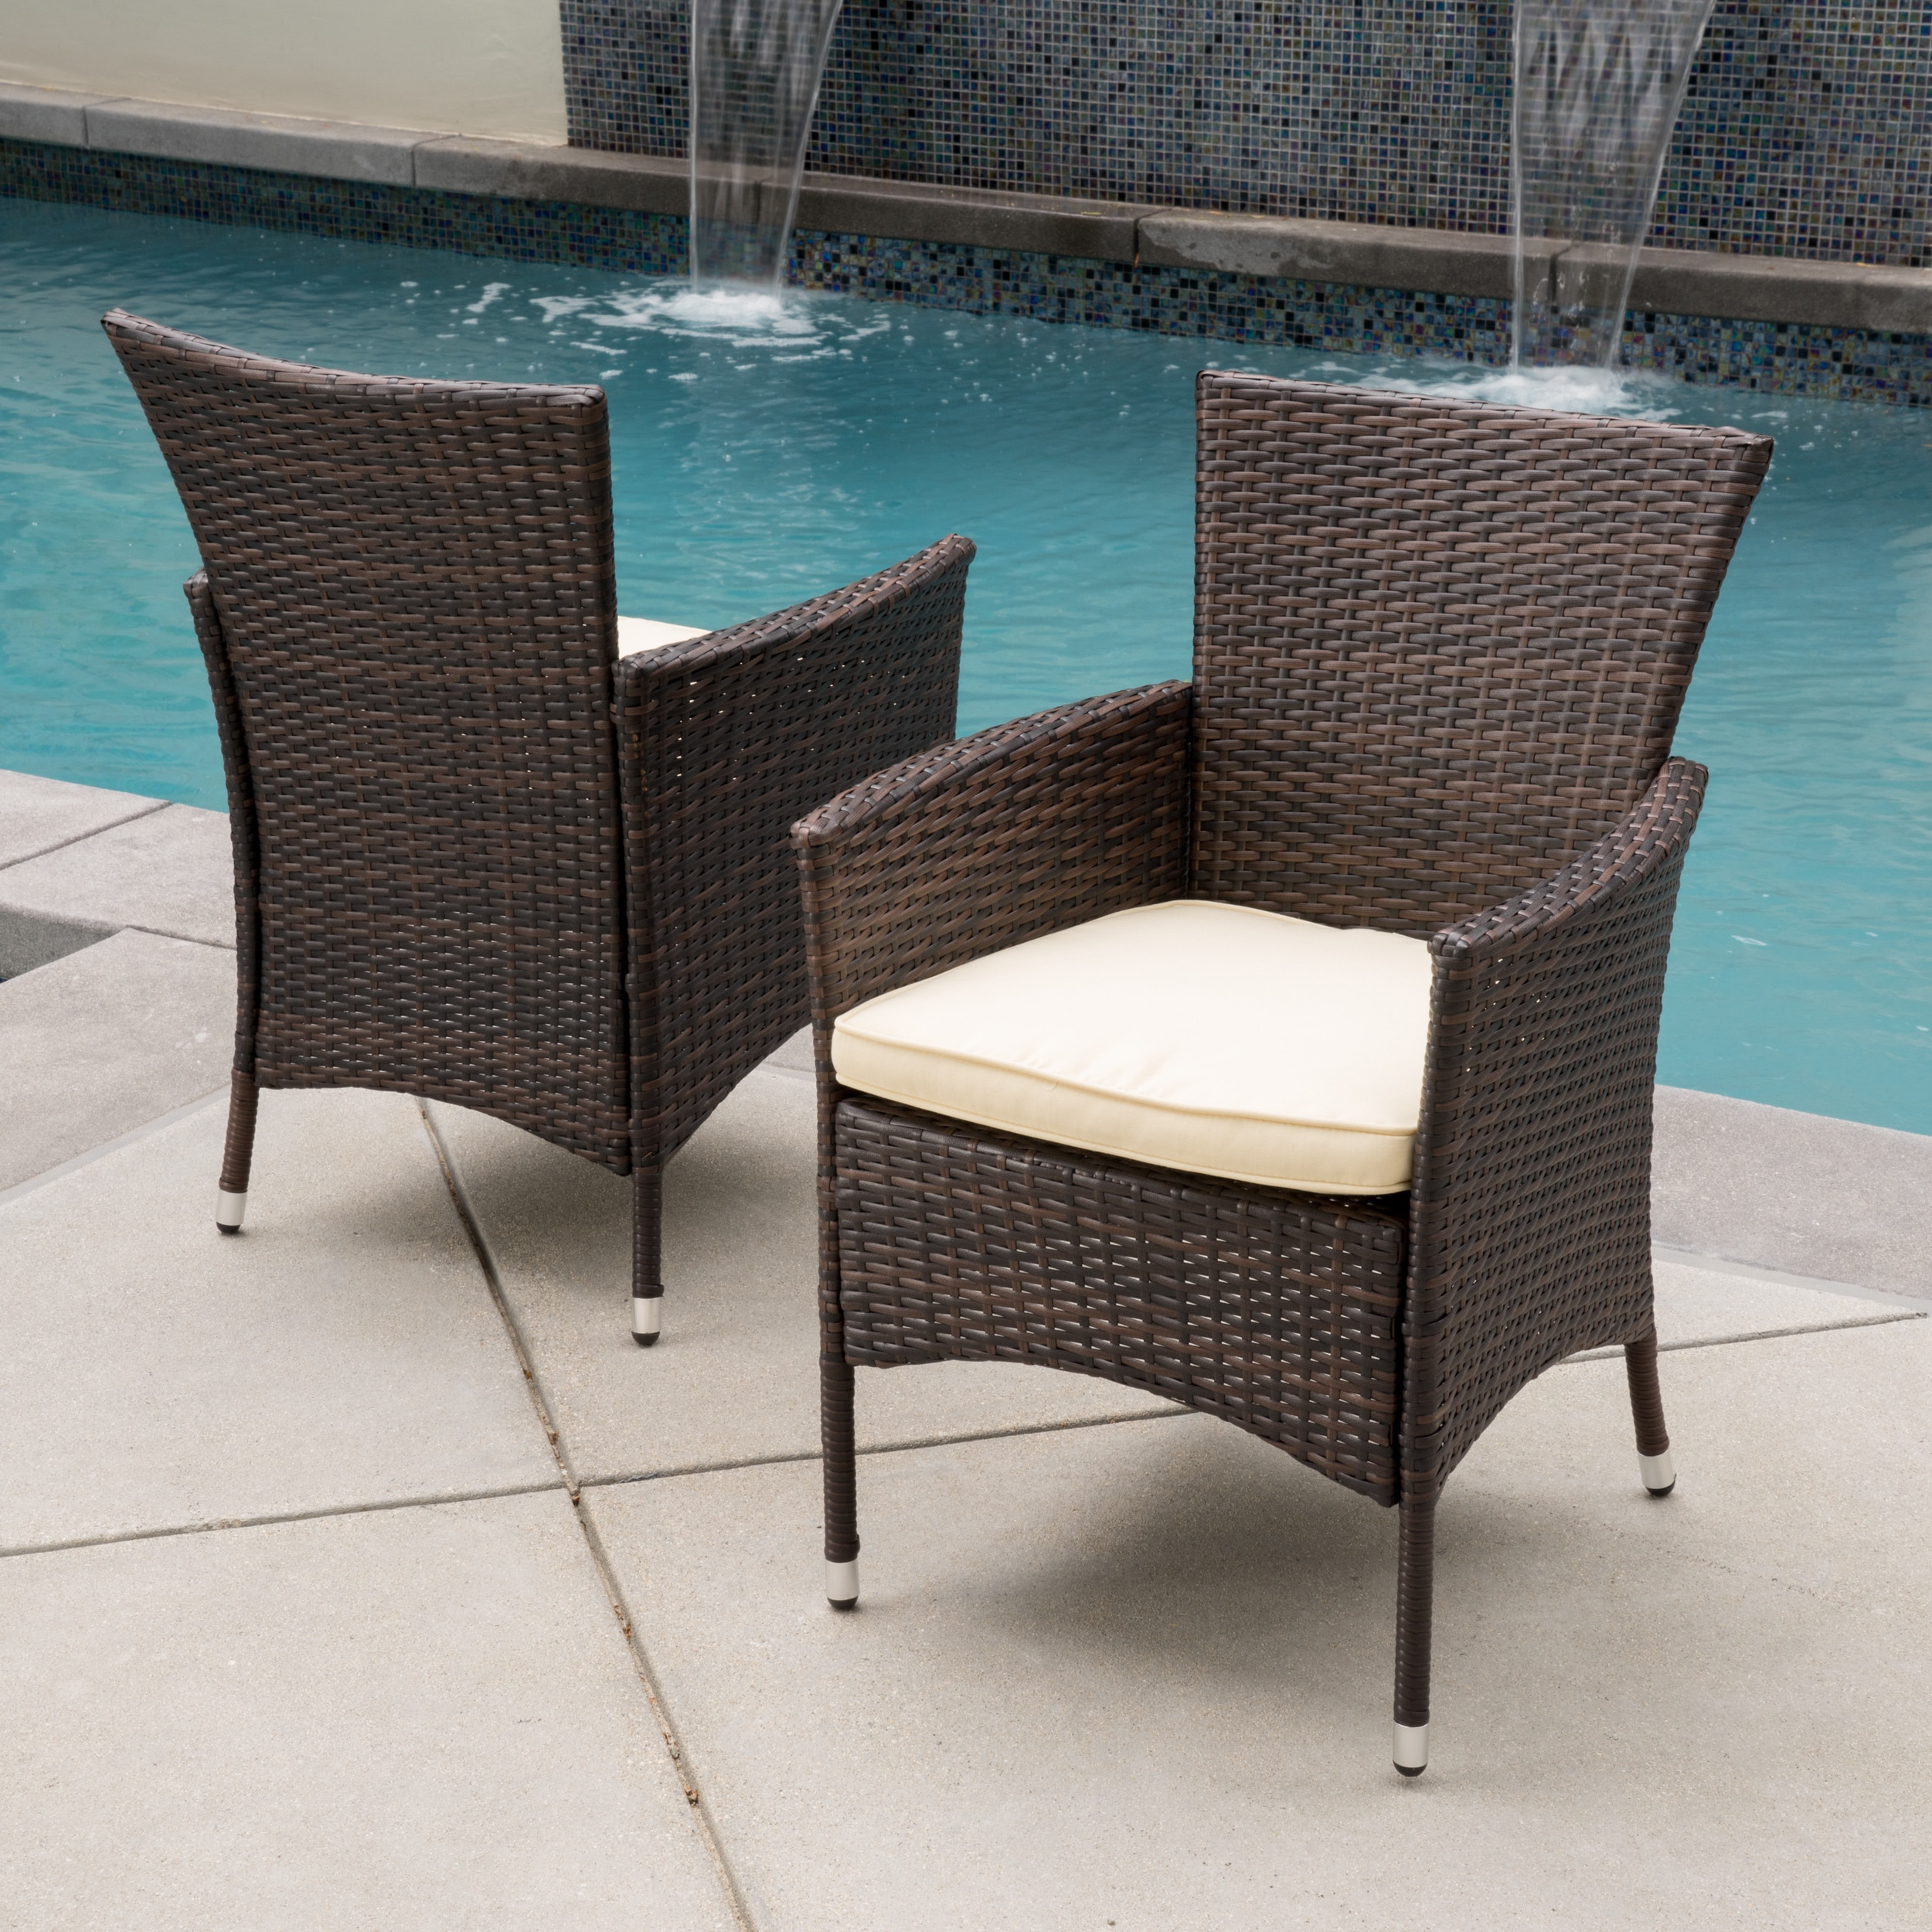 Surprising Malta Outdoor Wicker Dining Chair With Cushion By Christopher Knight Home Set Of 2 Theyellowbook Wood Chair Design Ideas Theyellowbookinfo